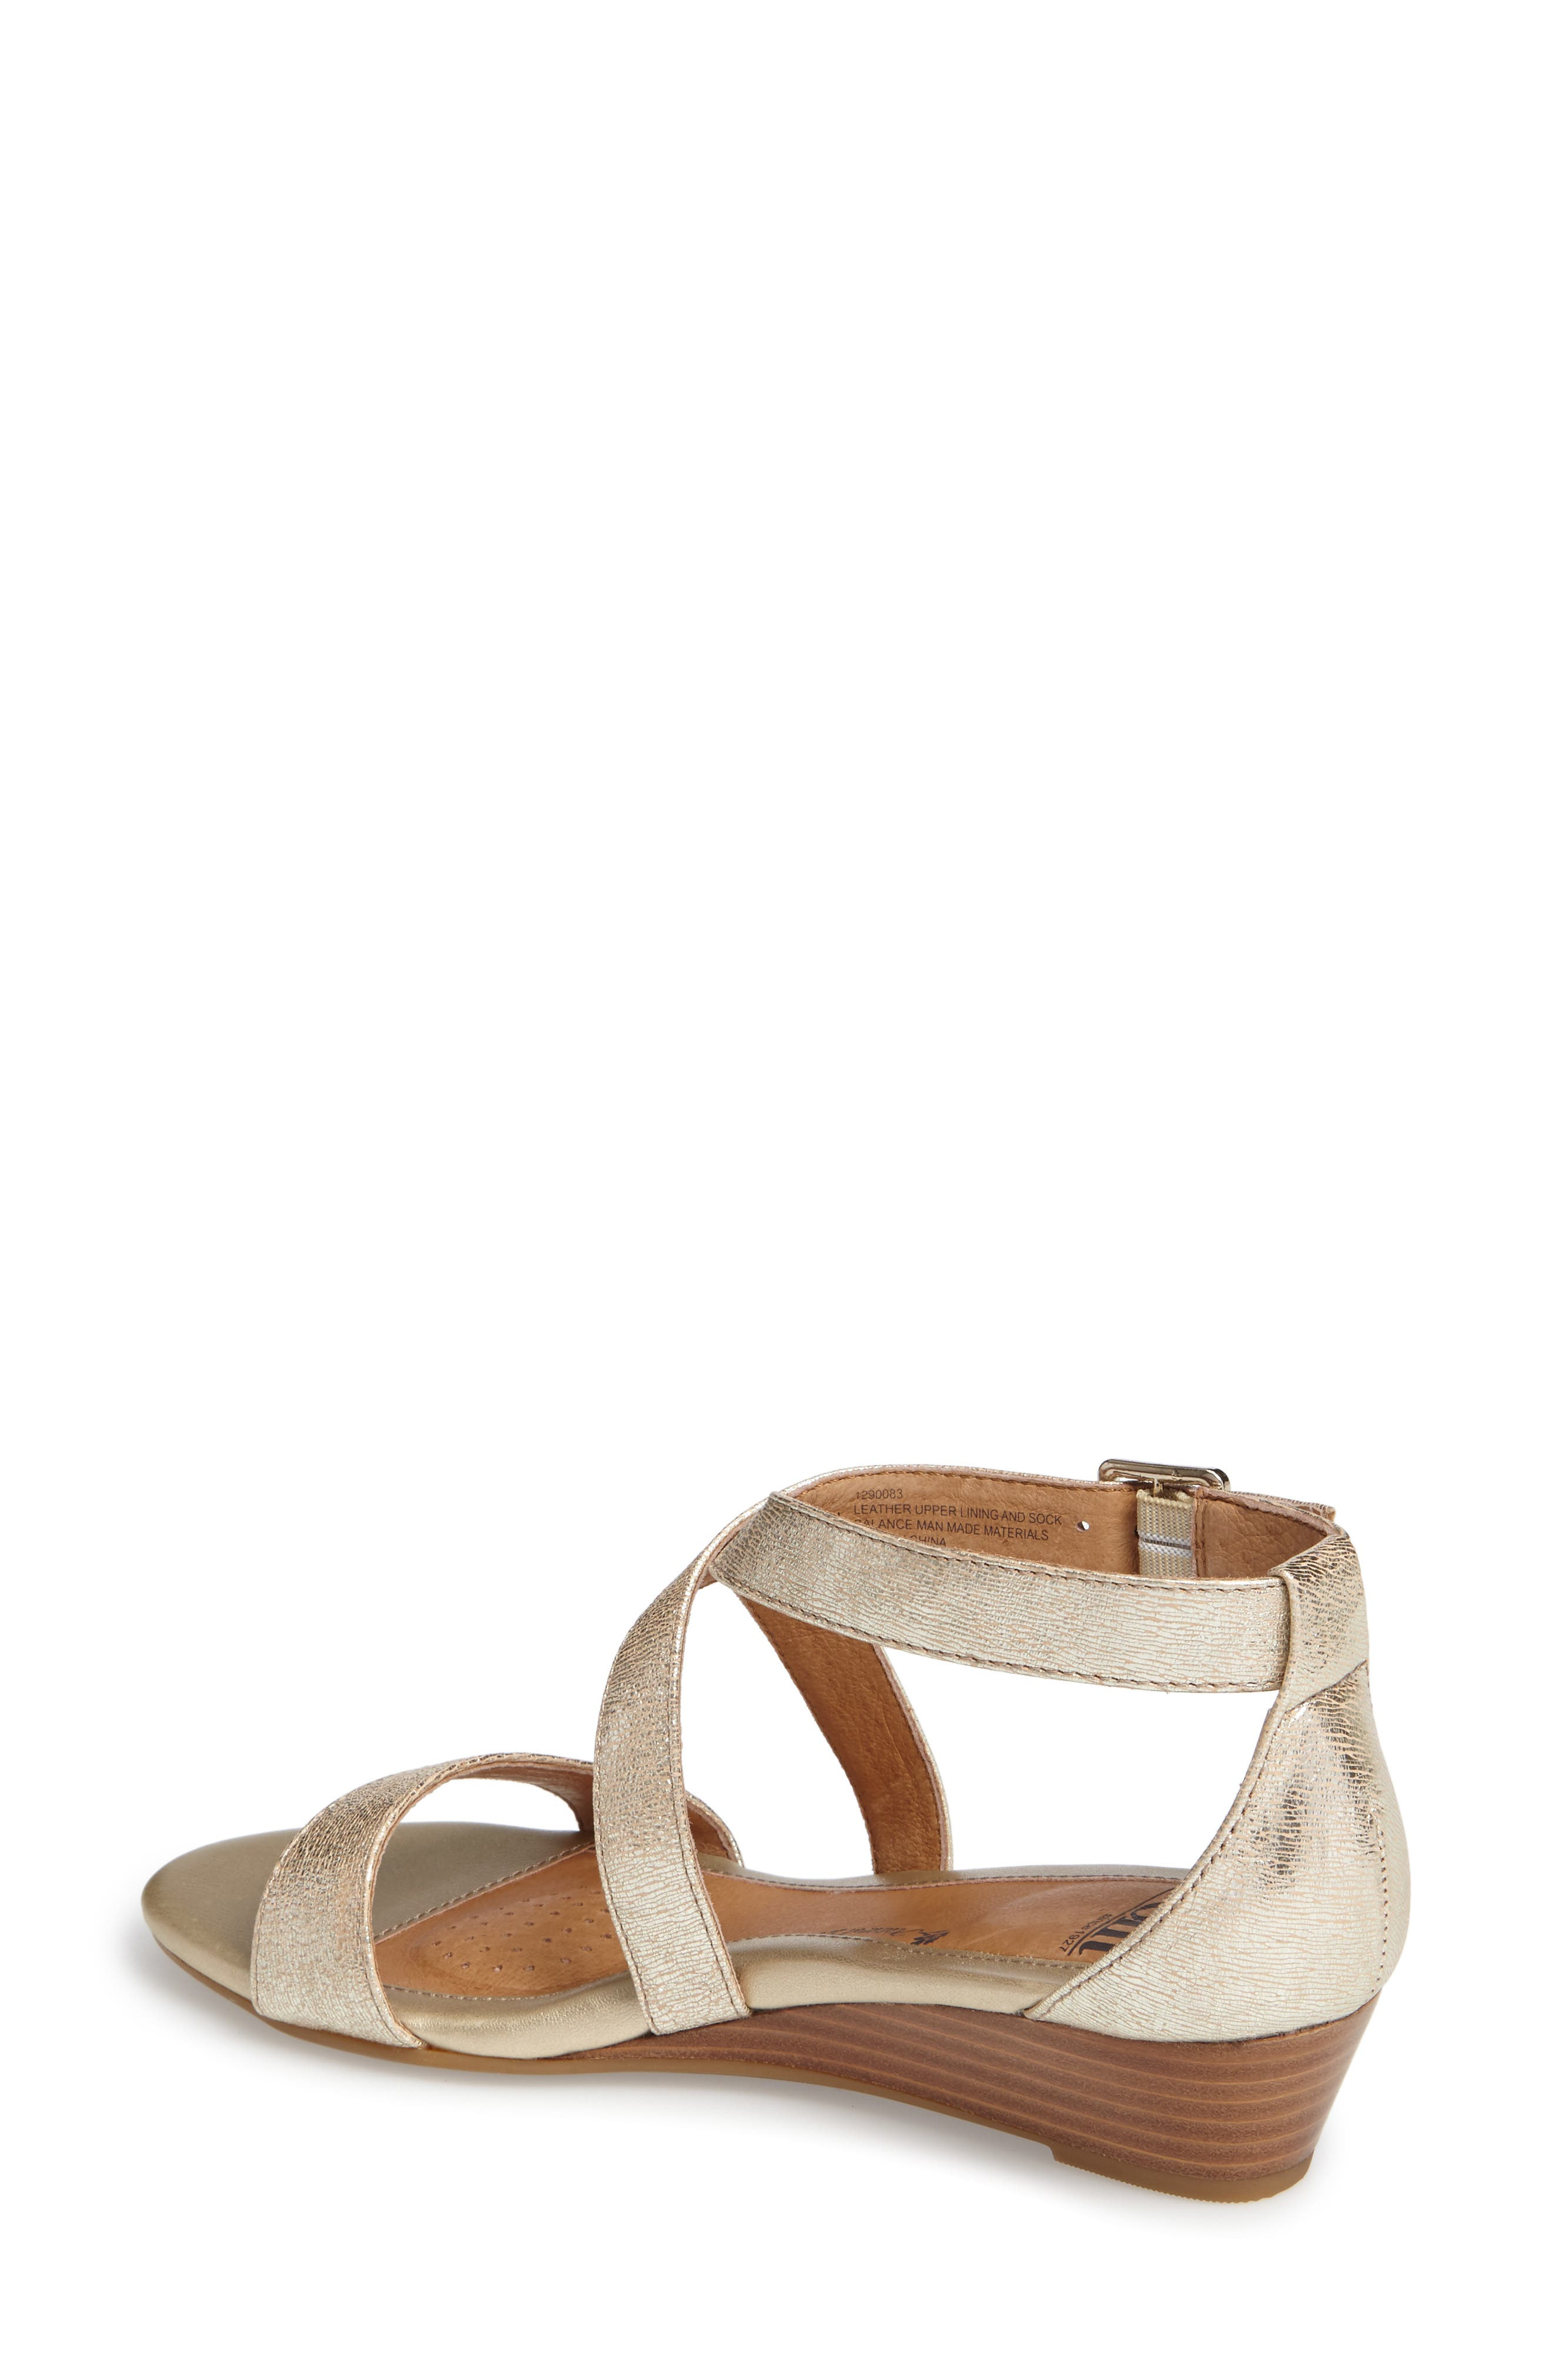 'Innis' Low Wedge Sandal,                             Alternate thumbnail 24, color,